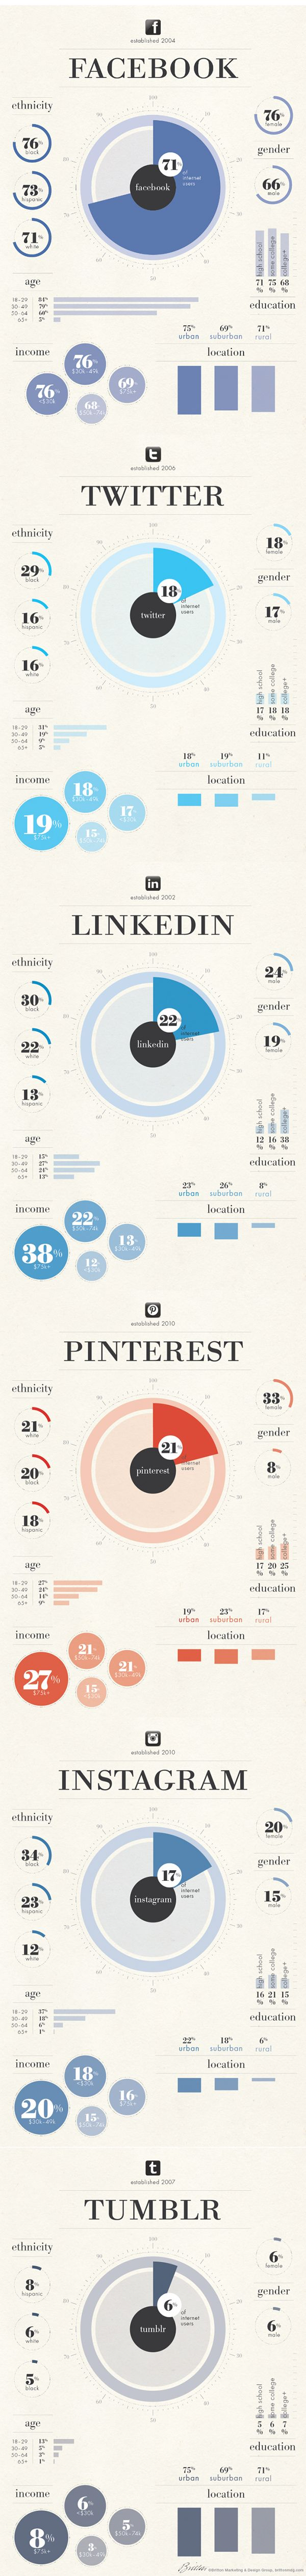 Social Media User Stats to Help You Choose the Best Network for Your Business #SocialMediaMarketing #Infographic